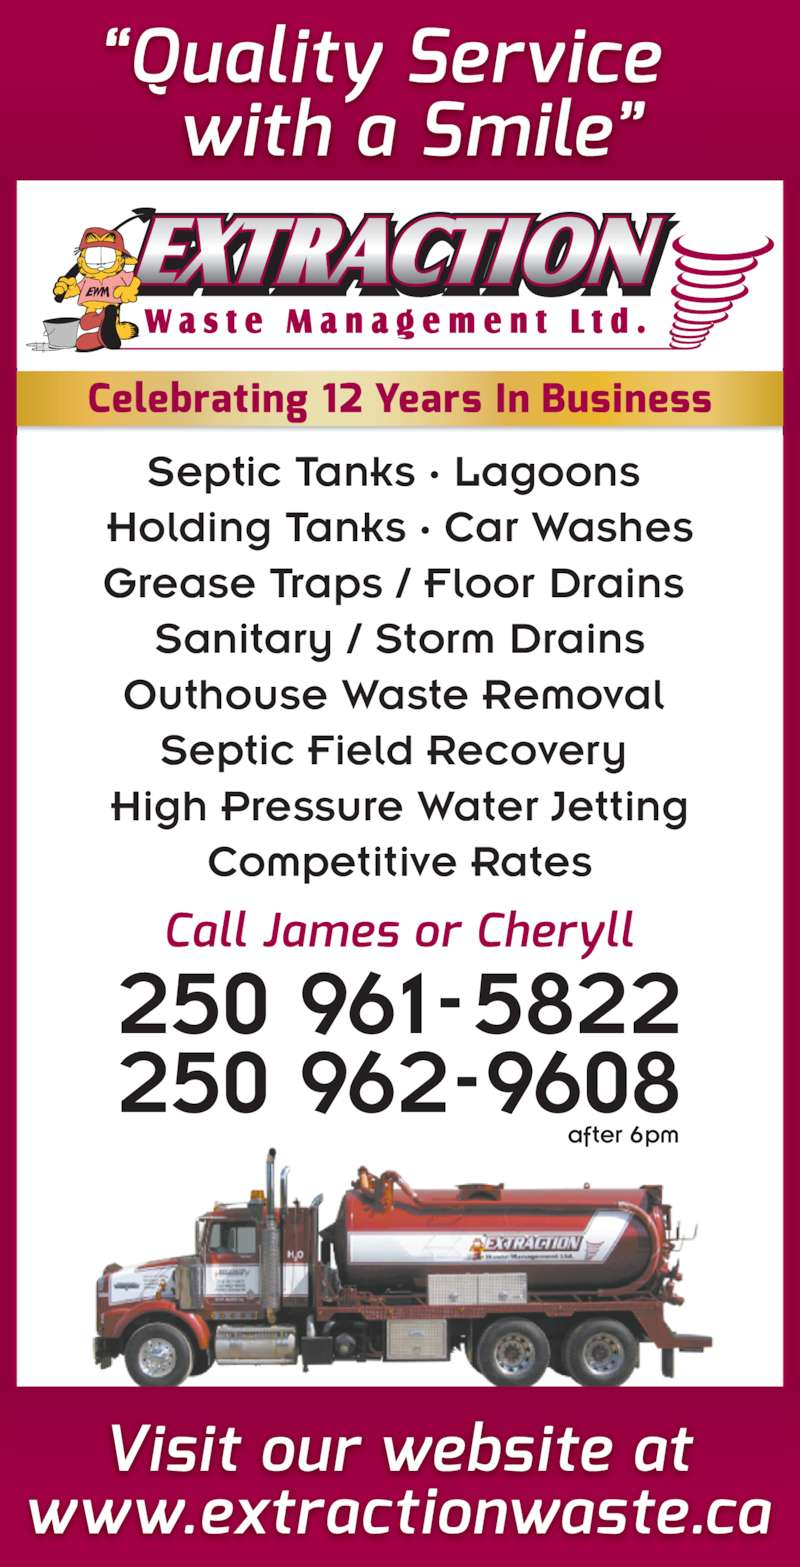 Extraction Waste Management (250-961-5822) - Display Ad - after 6pm 250 961-5822 250 962-9608 Septic Tanks · Lagoons  Holding Tanks · Car Washes Grease Traps / Floor Drains  Sanitary / Storm Drains Outhouse Waste Removal  Septic Field Recovery  High Pressure Water Jetting Competitive Rates